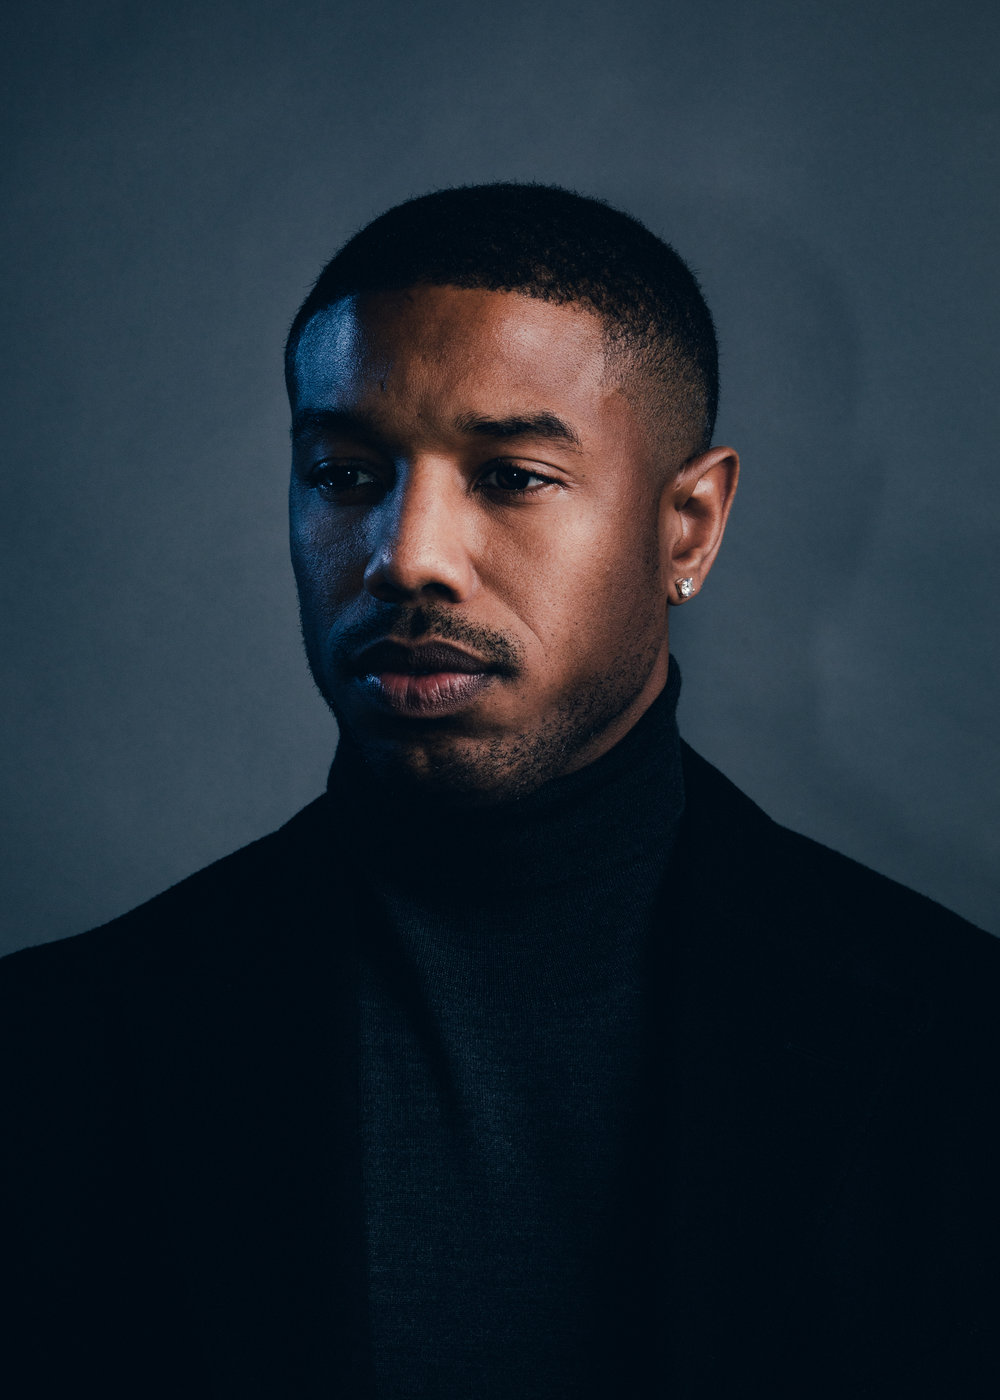 Michael B. Jordan for The New York Times